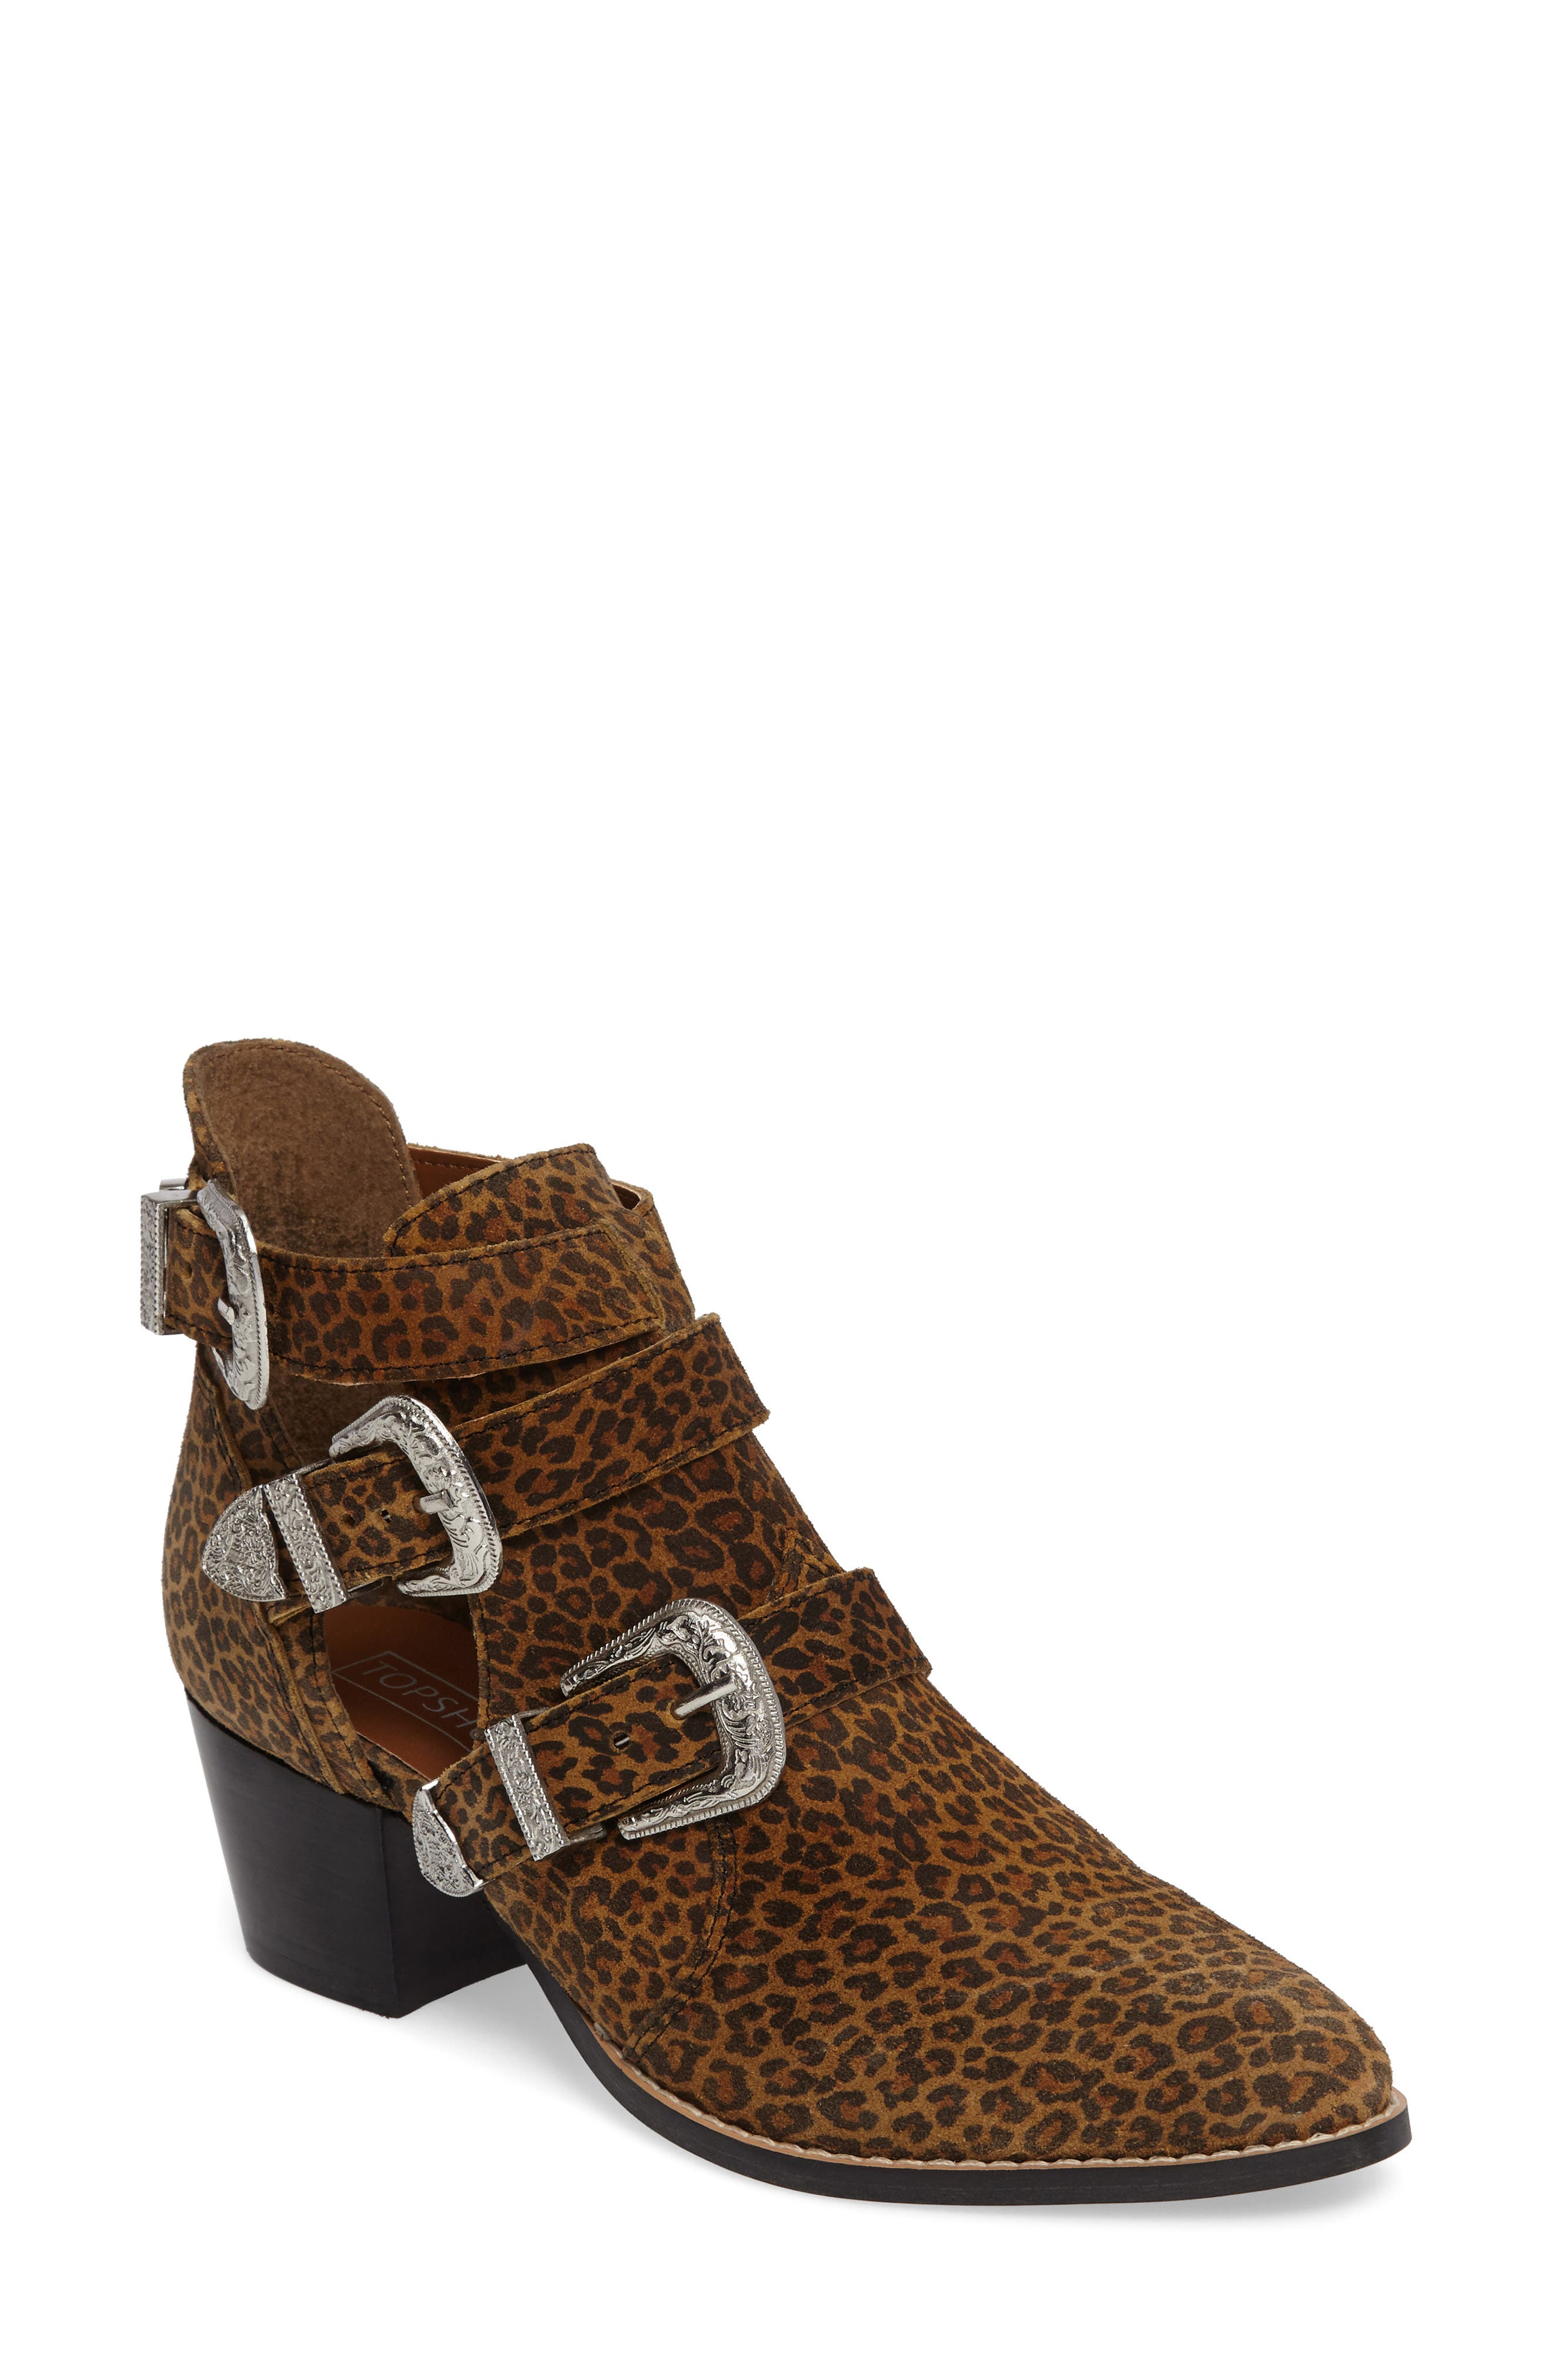 Marmalade Leopard Print Buckle Bootie,                             Main thumbnail 1, color,